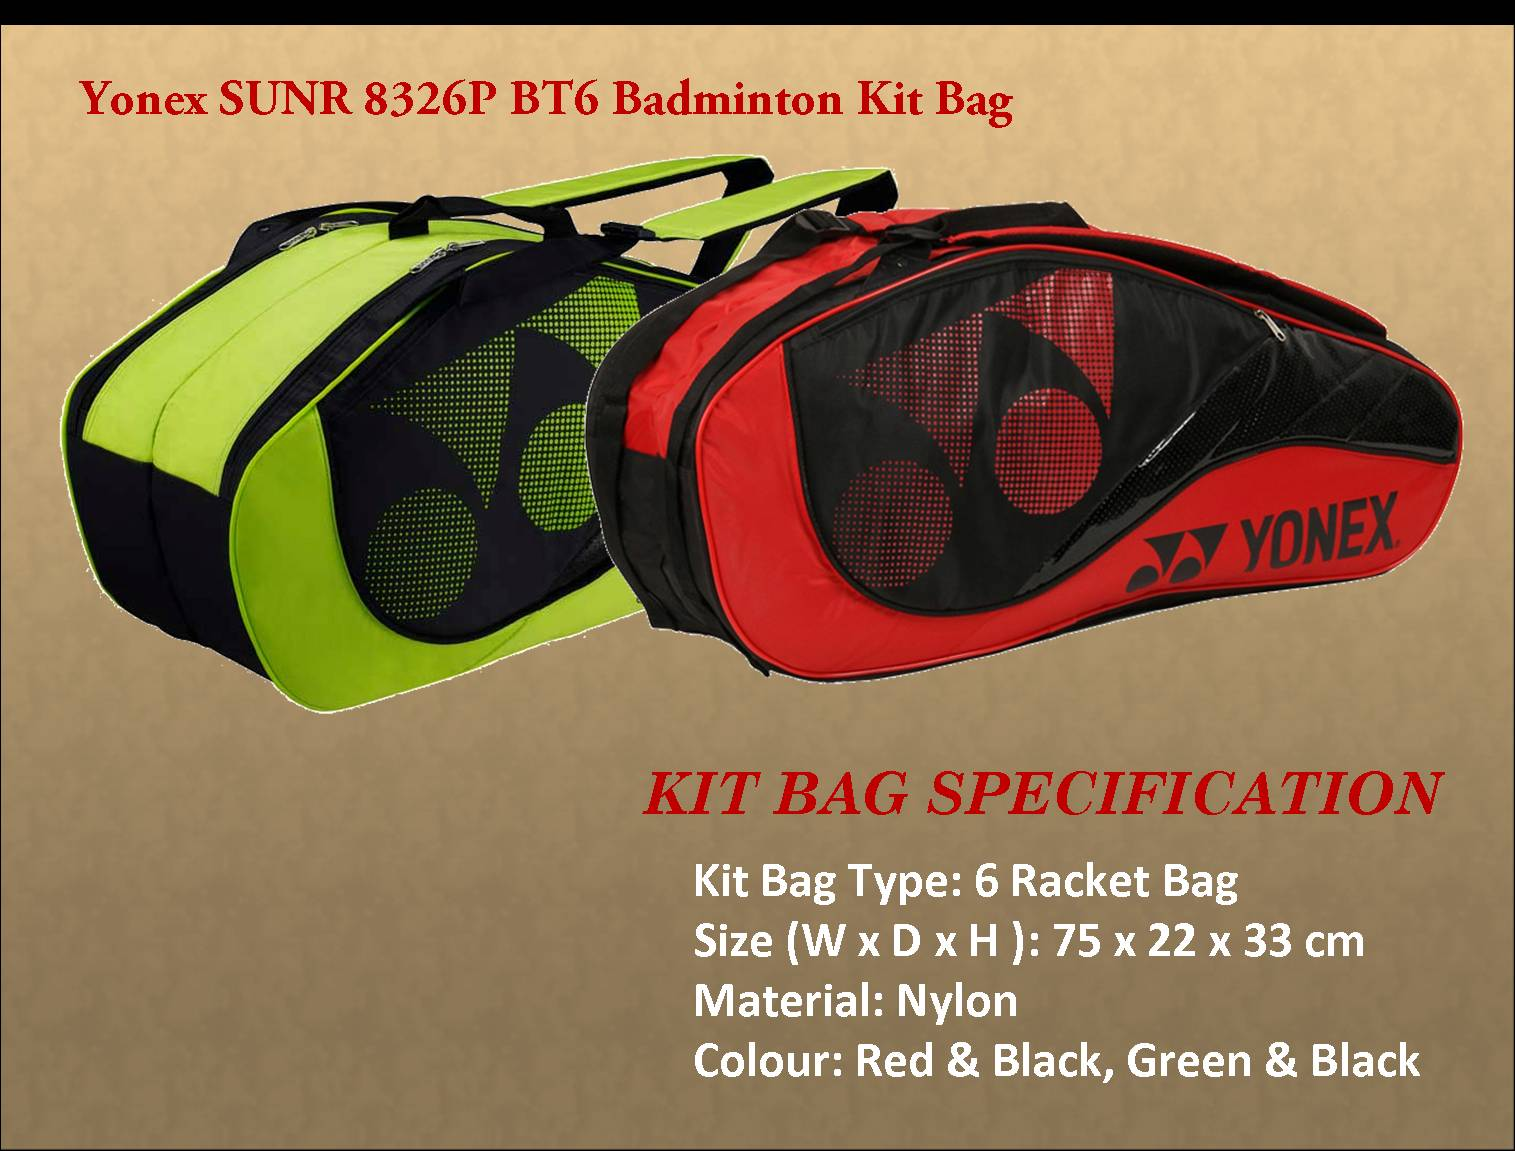 Yonex SUNR 8326P BT6 Badminton Kit Bag